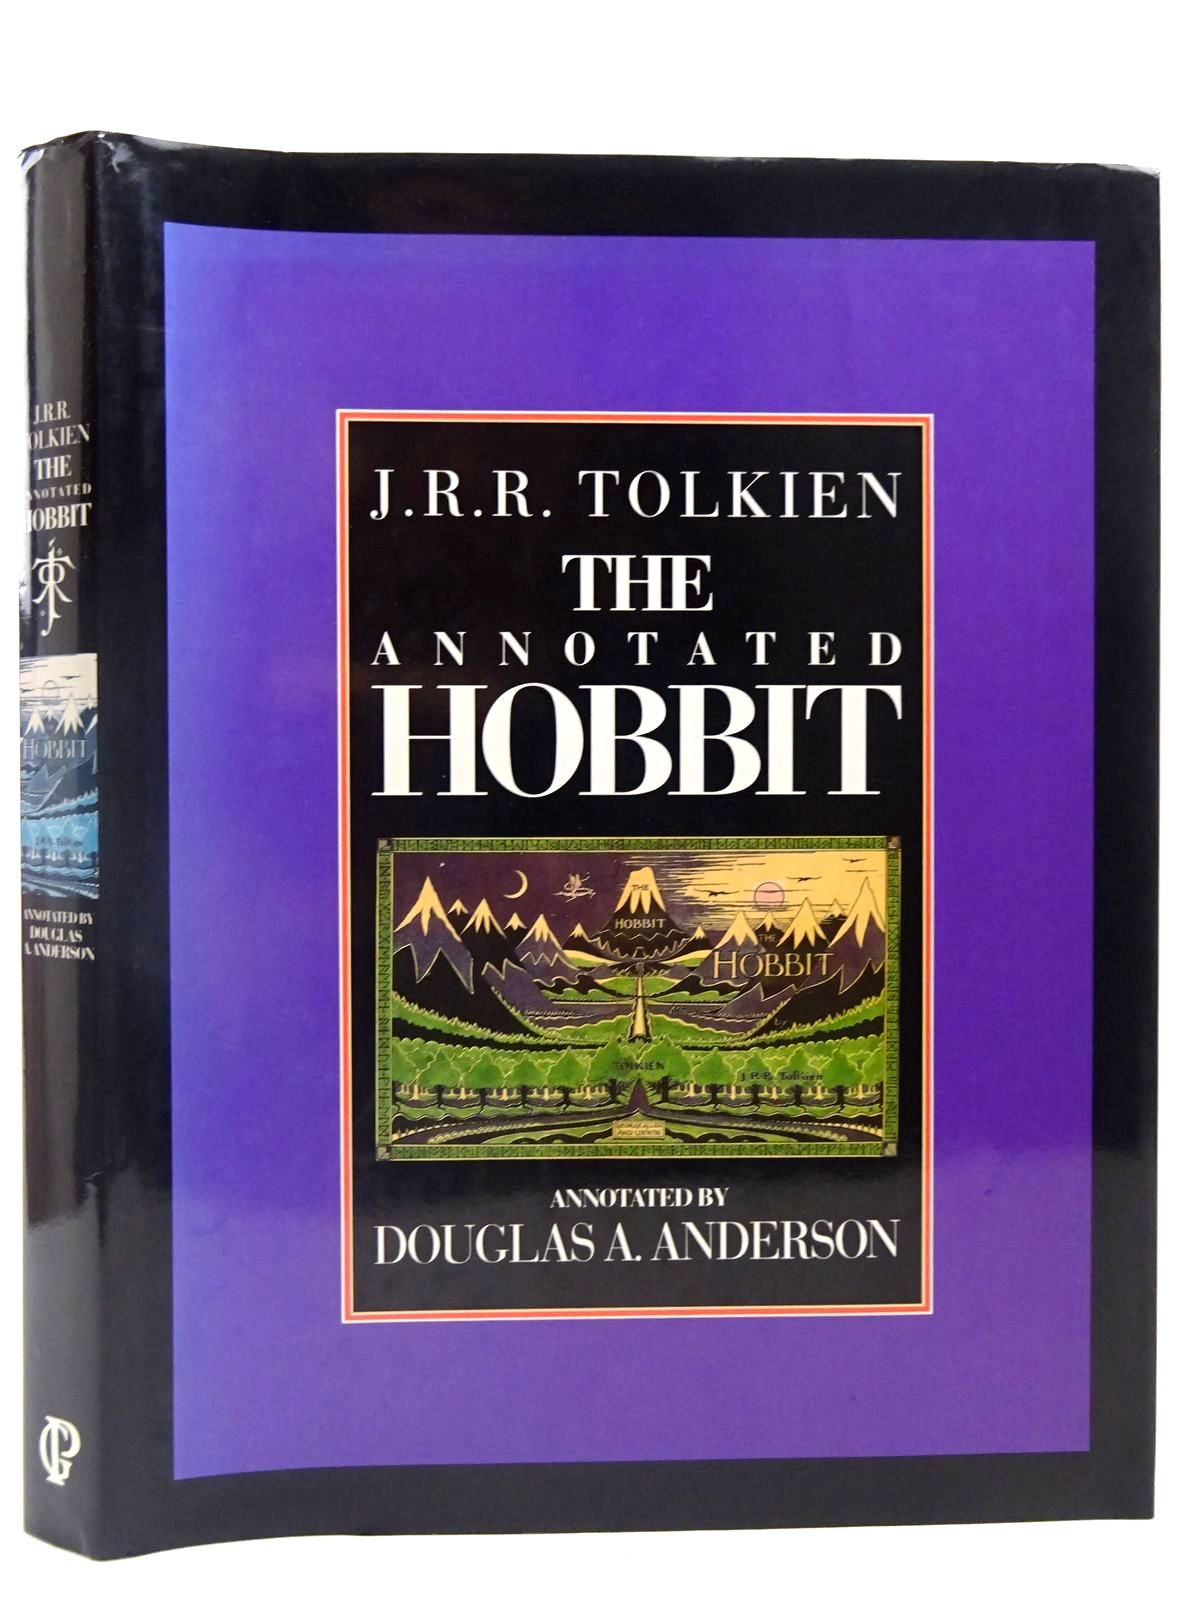 Photo of THE ANNOTATED HOBBIT written by Tolkien, J.R.R. Anderson, Douglas A. illustrated by Tolkien, J.R.R. published by Guild Publishing (STOCK CODE: 2127852)  for sale by Stella & Rose's Books